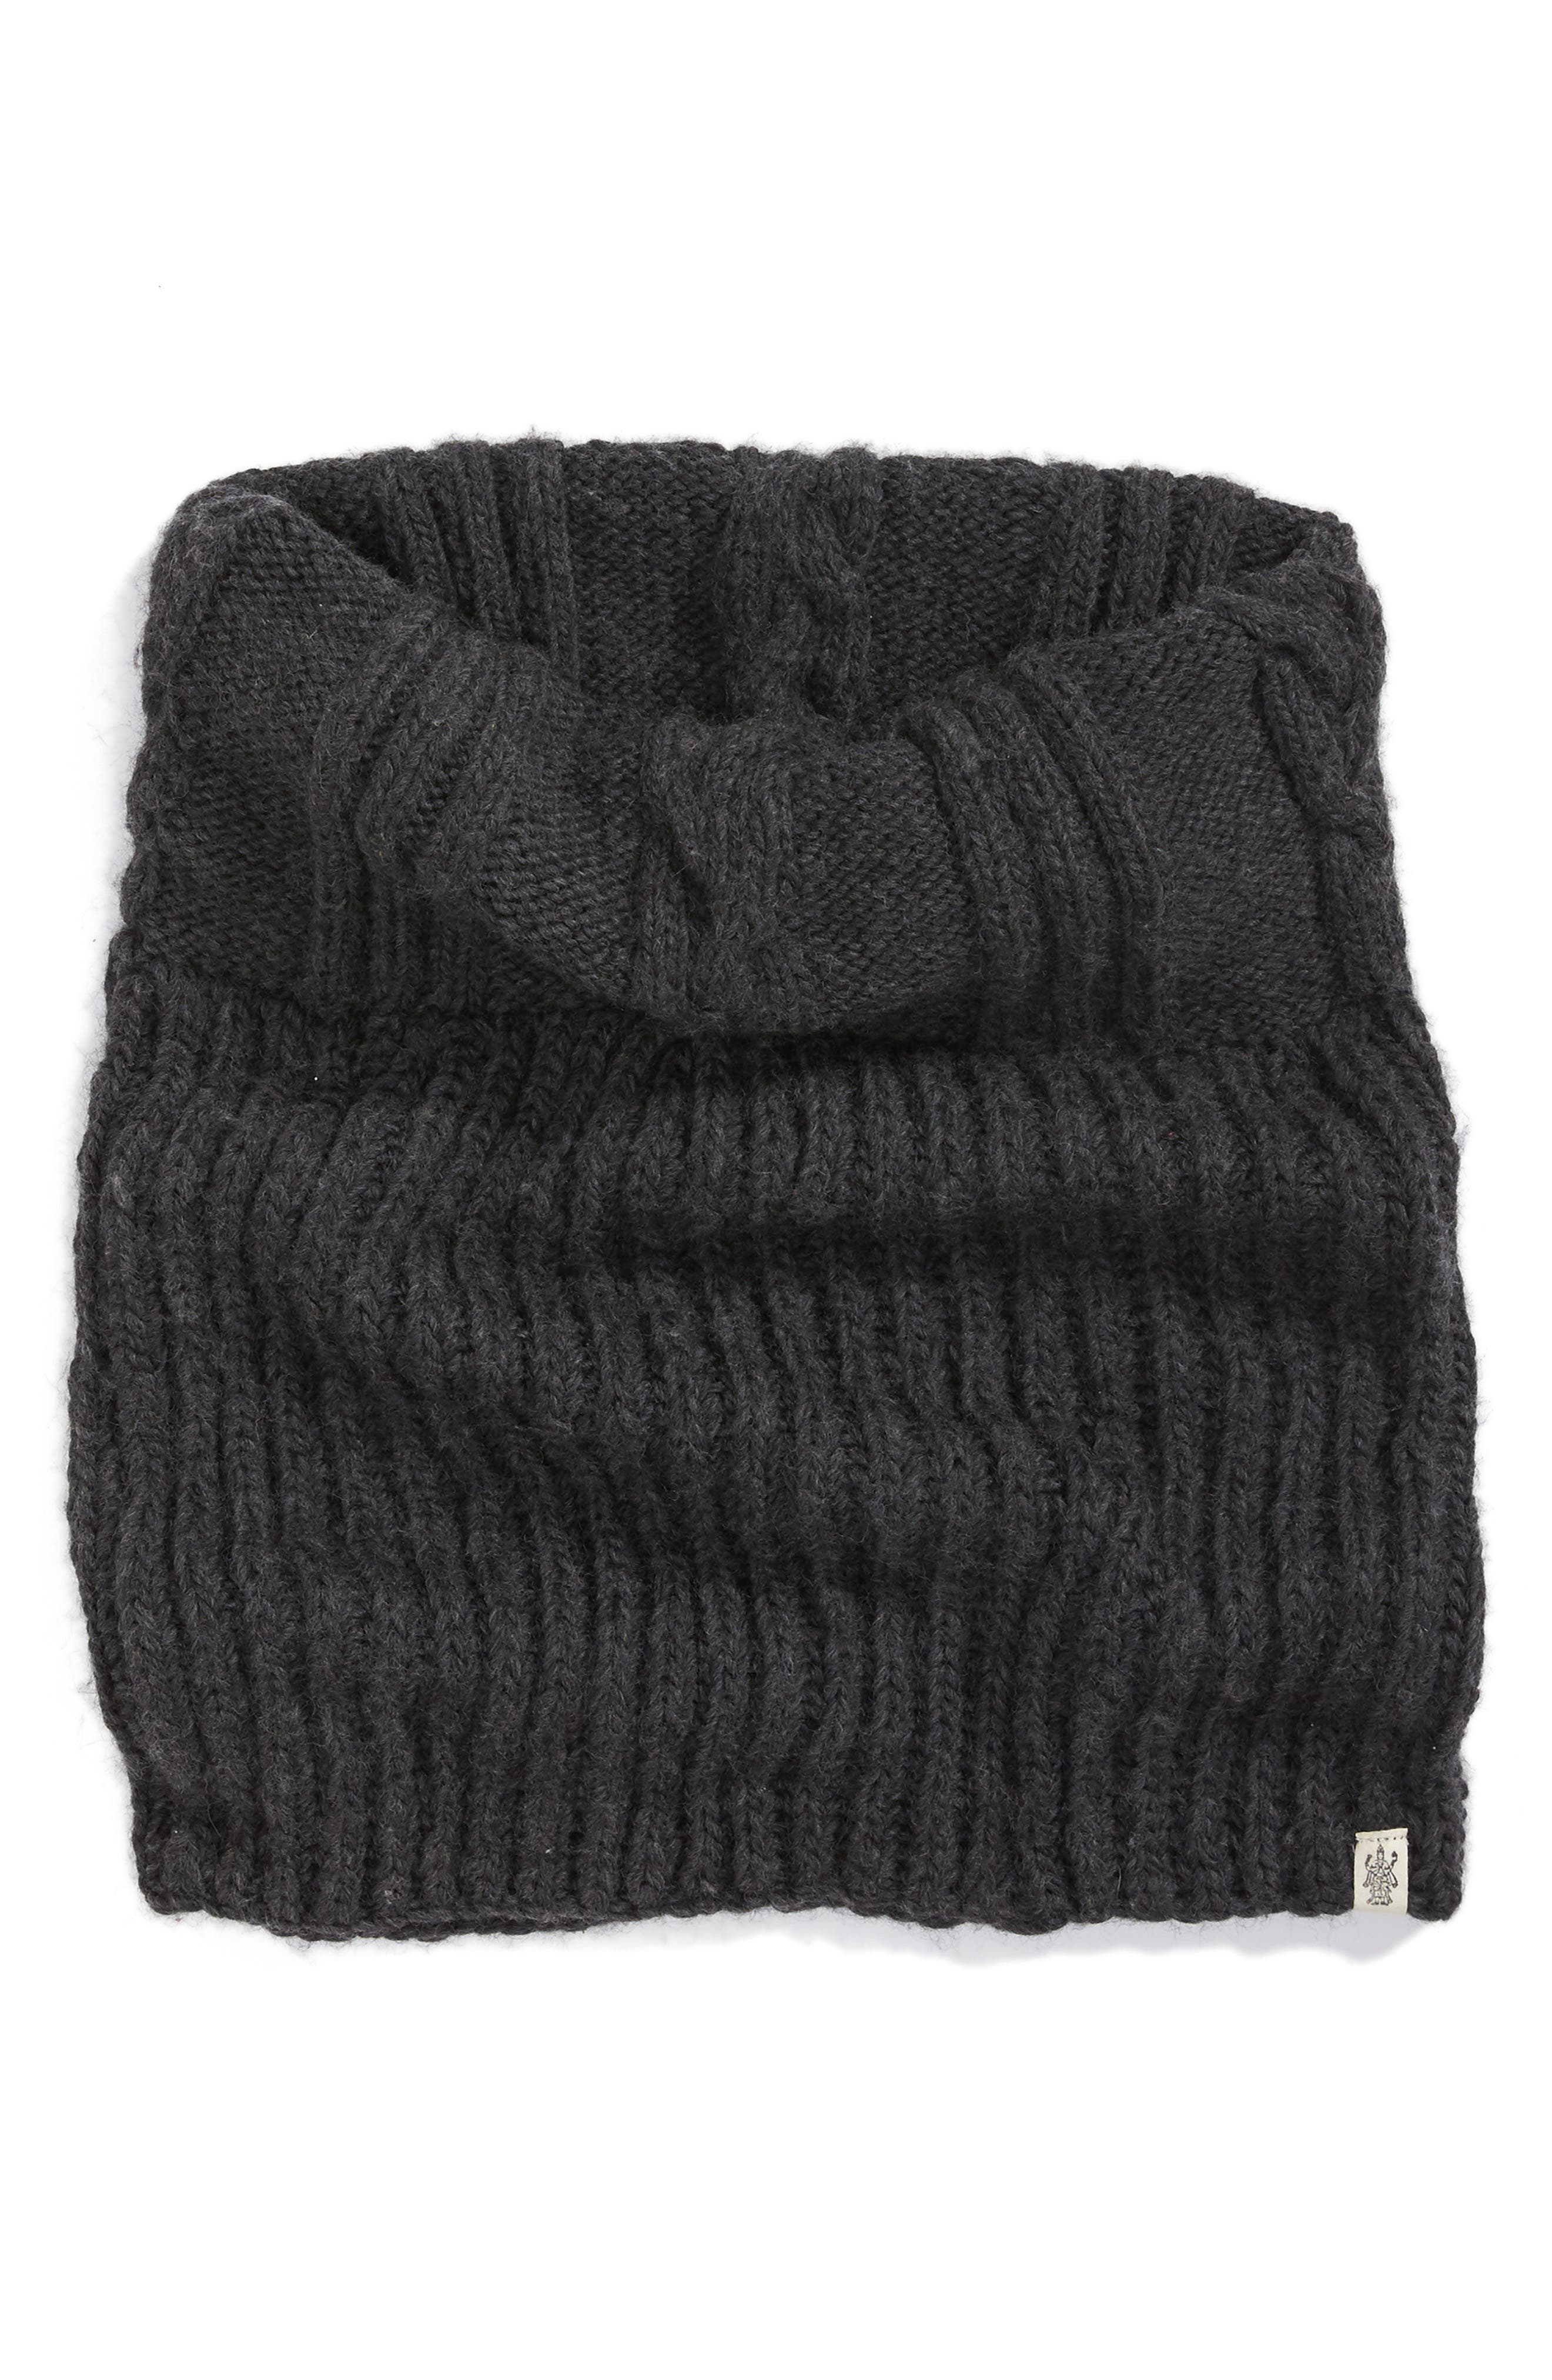 Oversize Cable Knit Wool Infinity Scarf,                             Alternate thumbnail 5, color,